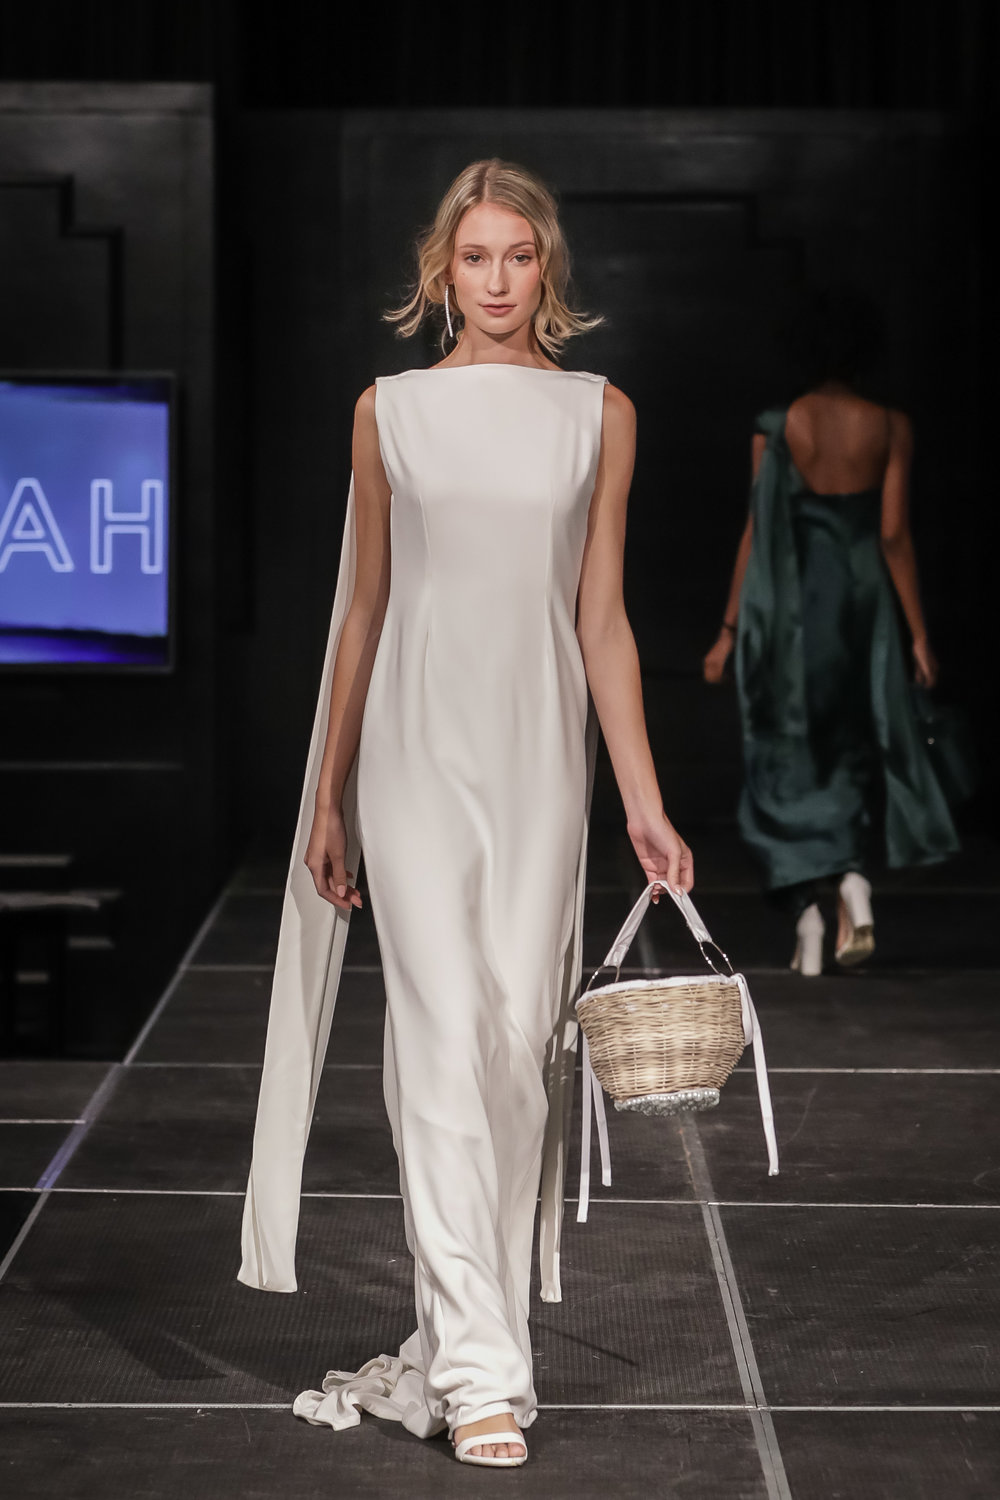 FERRAH SS 18 Look 12 - i : Loha Backless Gown in Crepeii : Sendai Pearl Bucket Bag